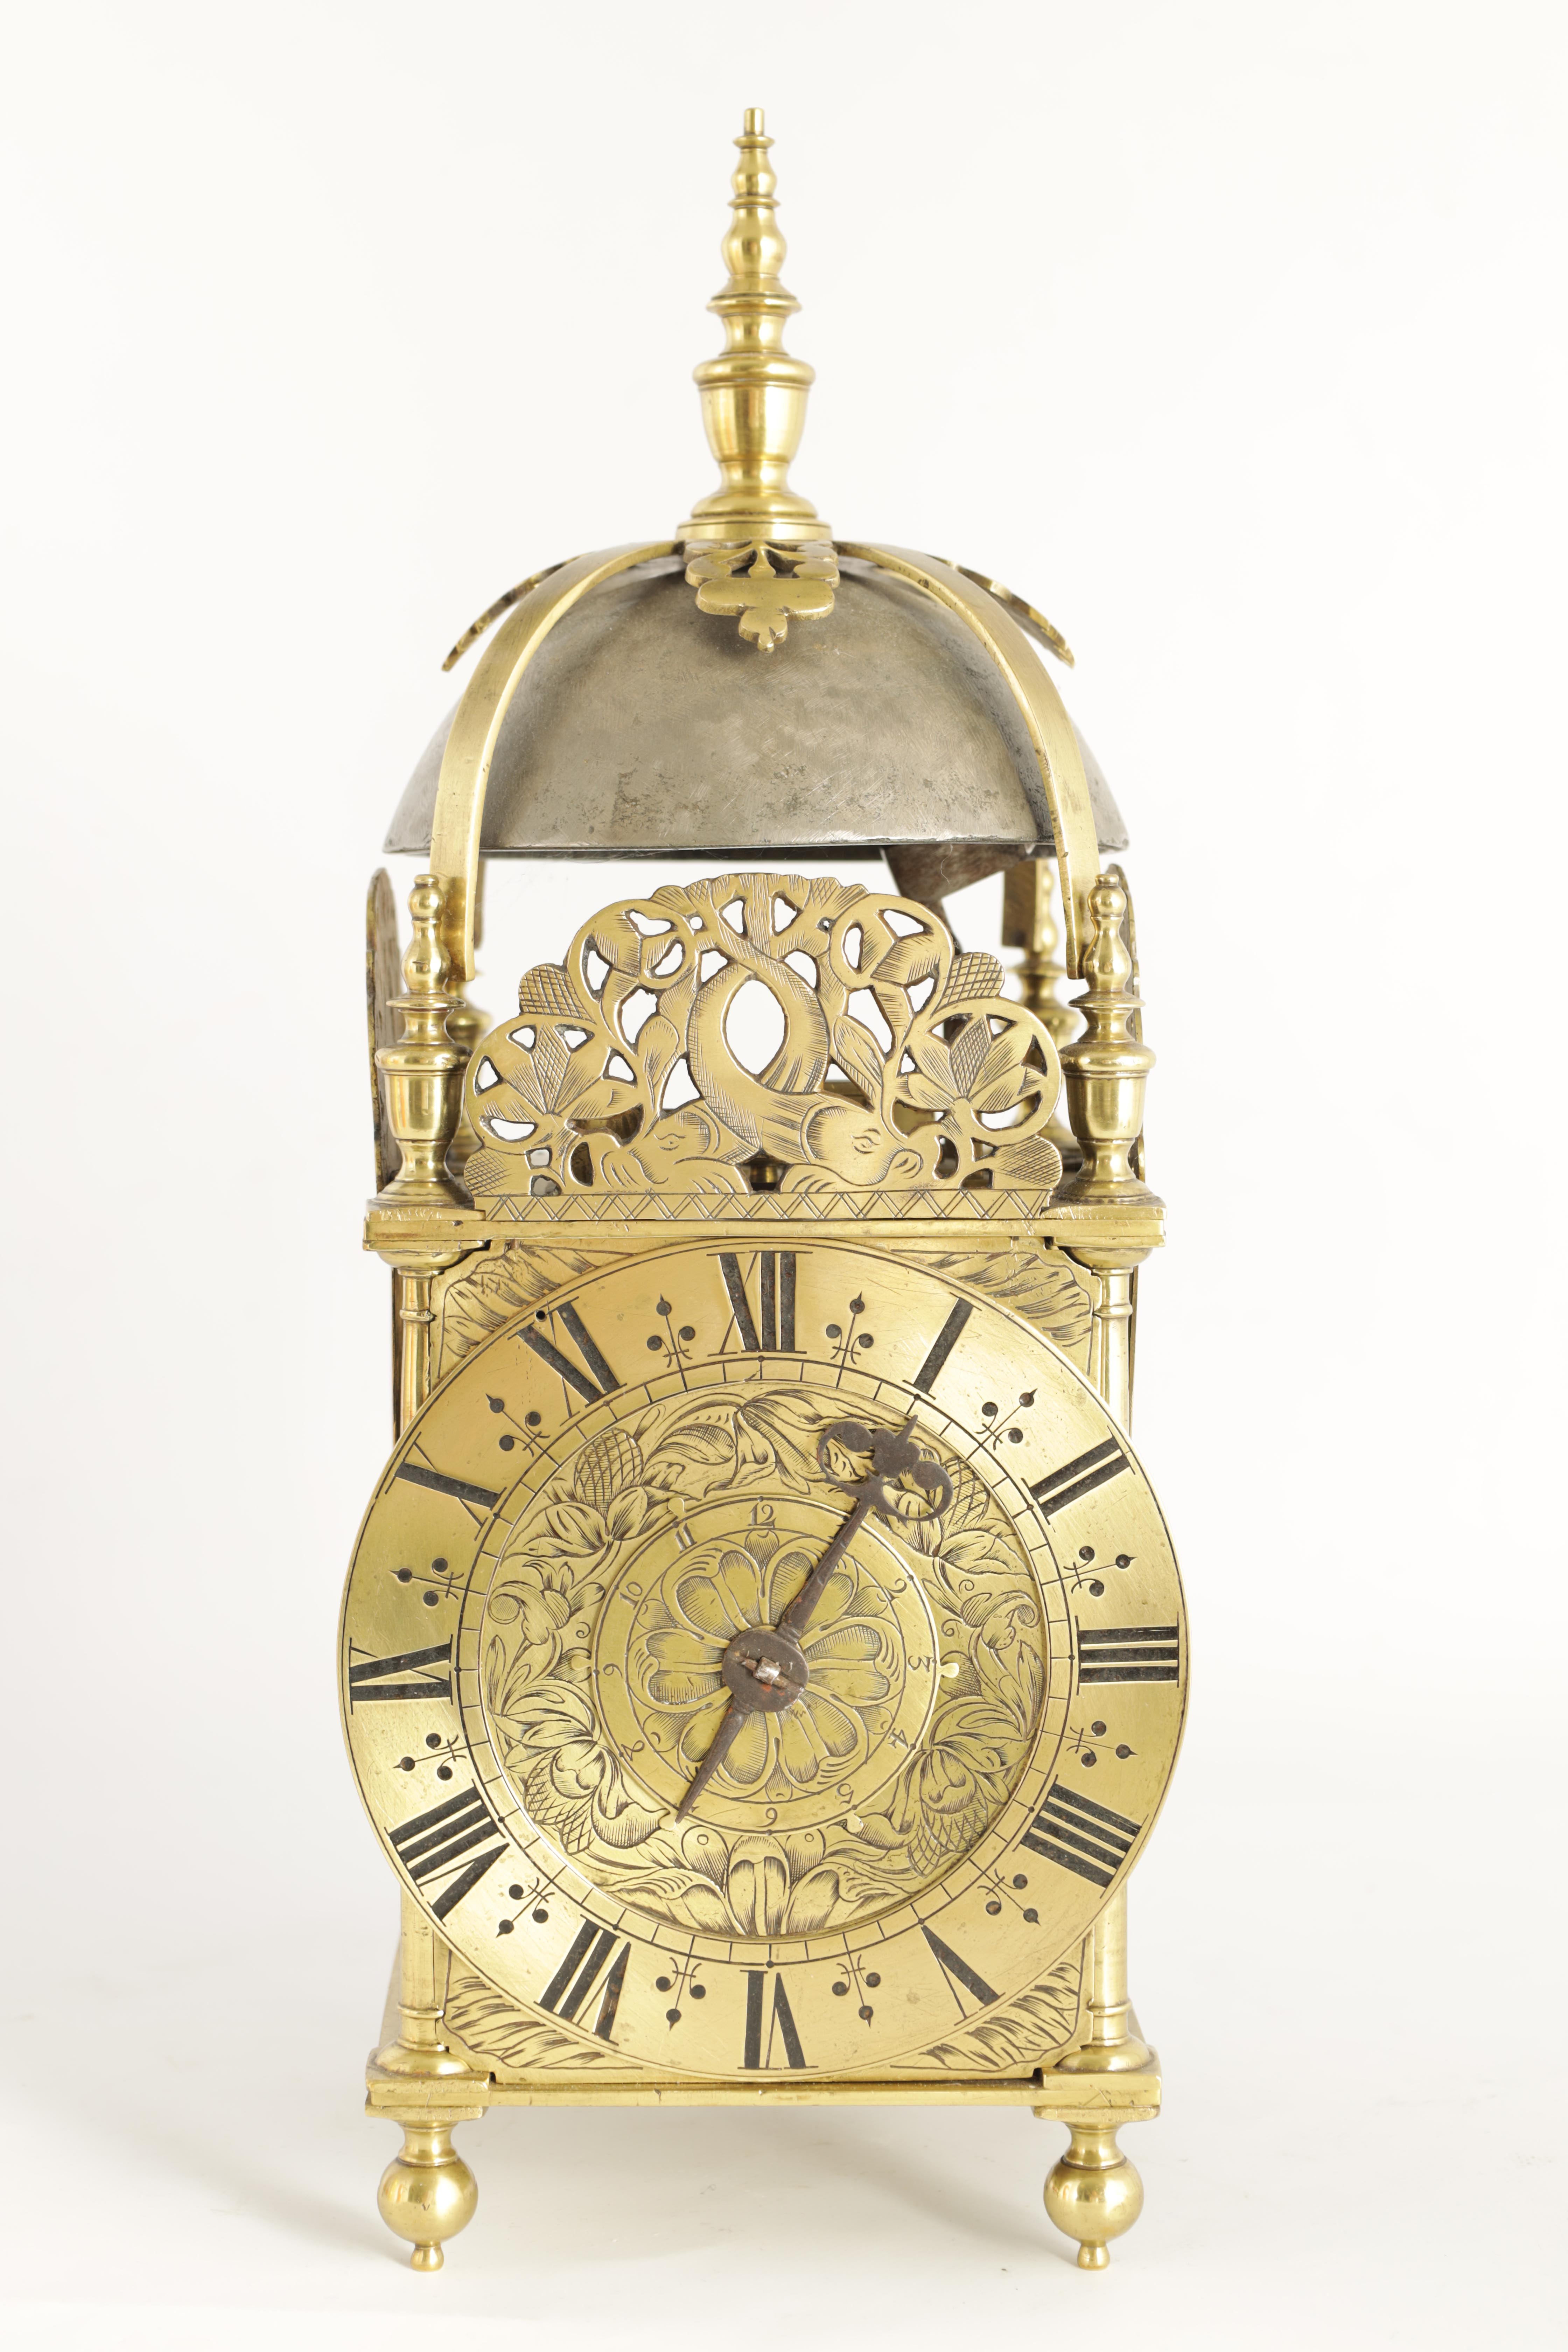 A FINE CHARLES II BRASS LANTERN CLOCKthe posted frame with side doors, engraved fretwork